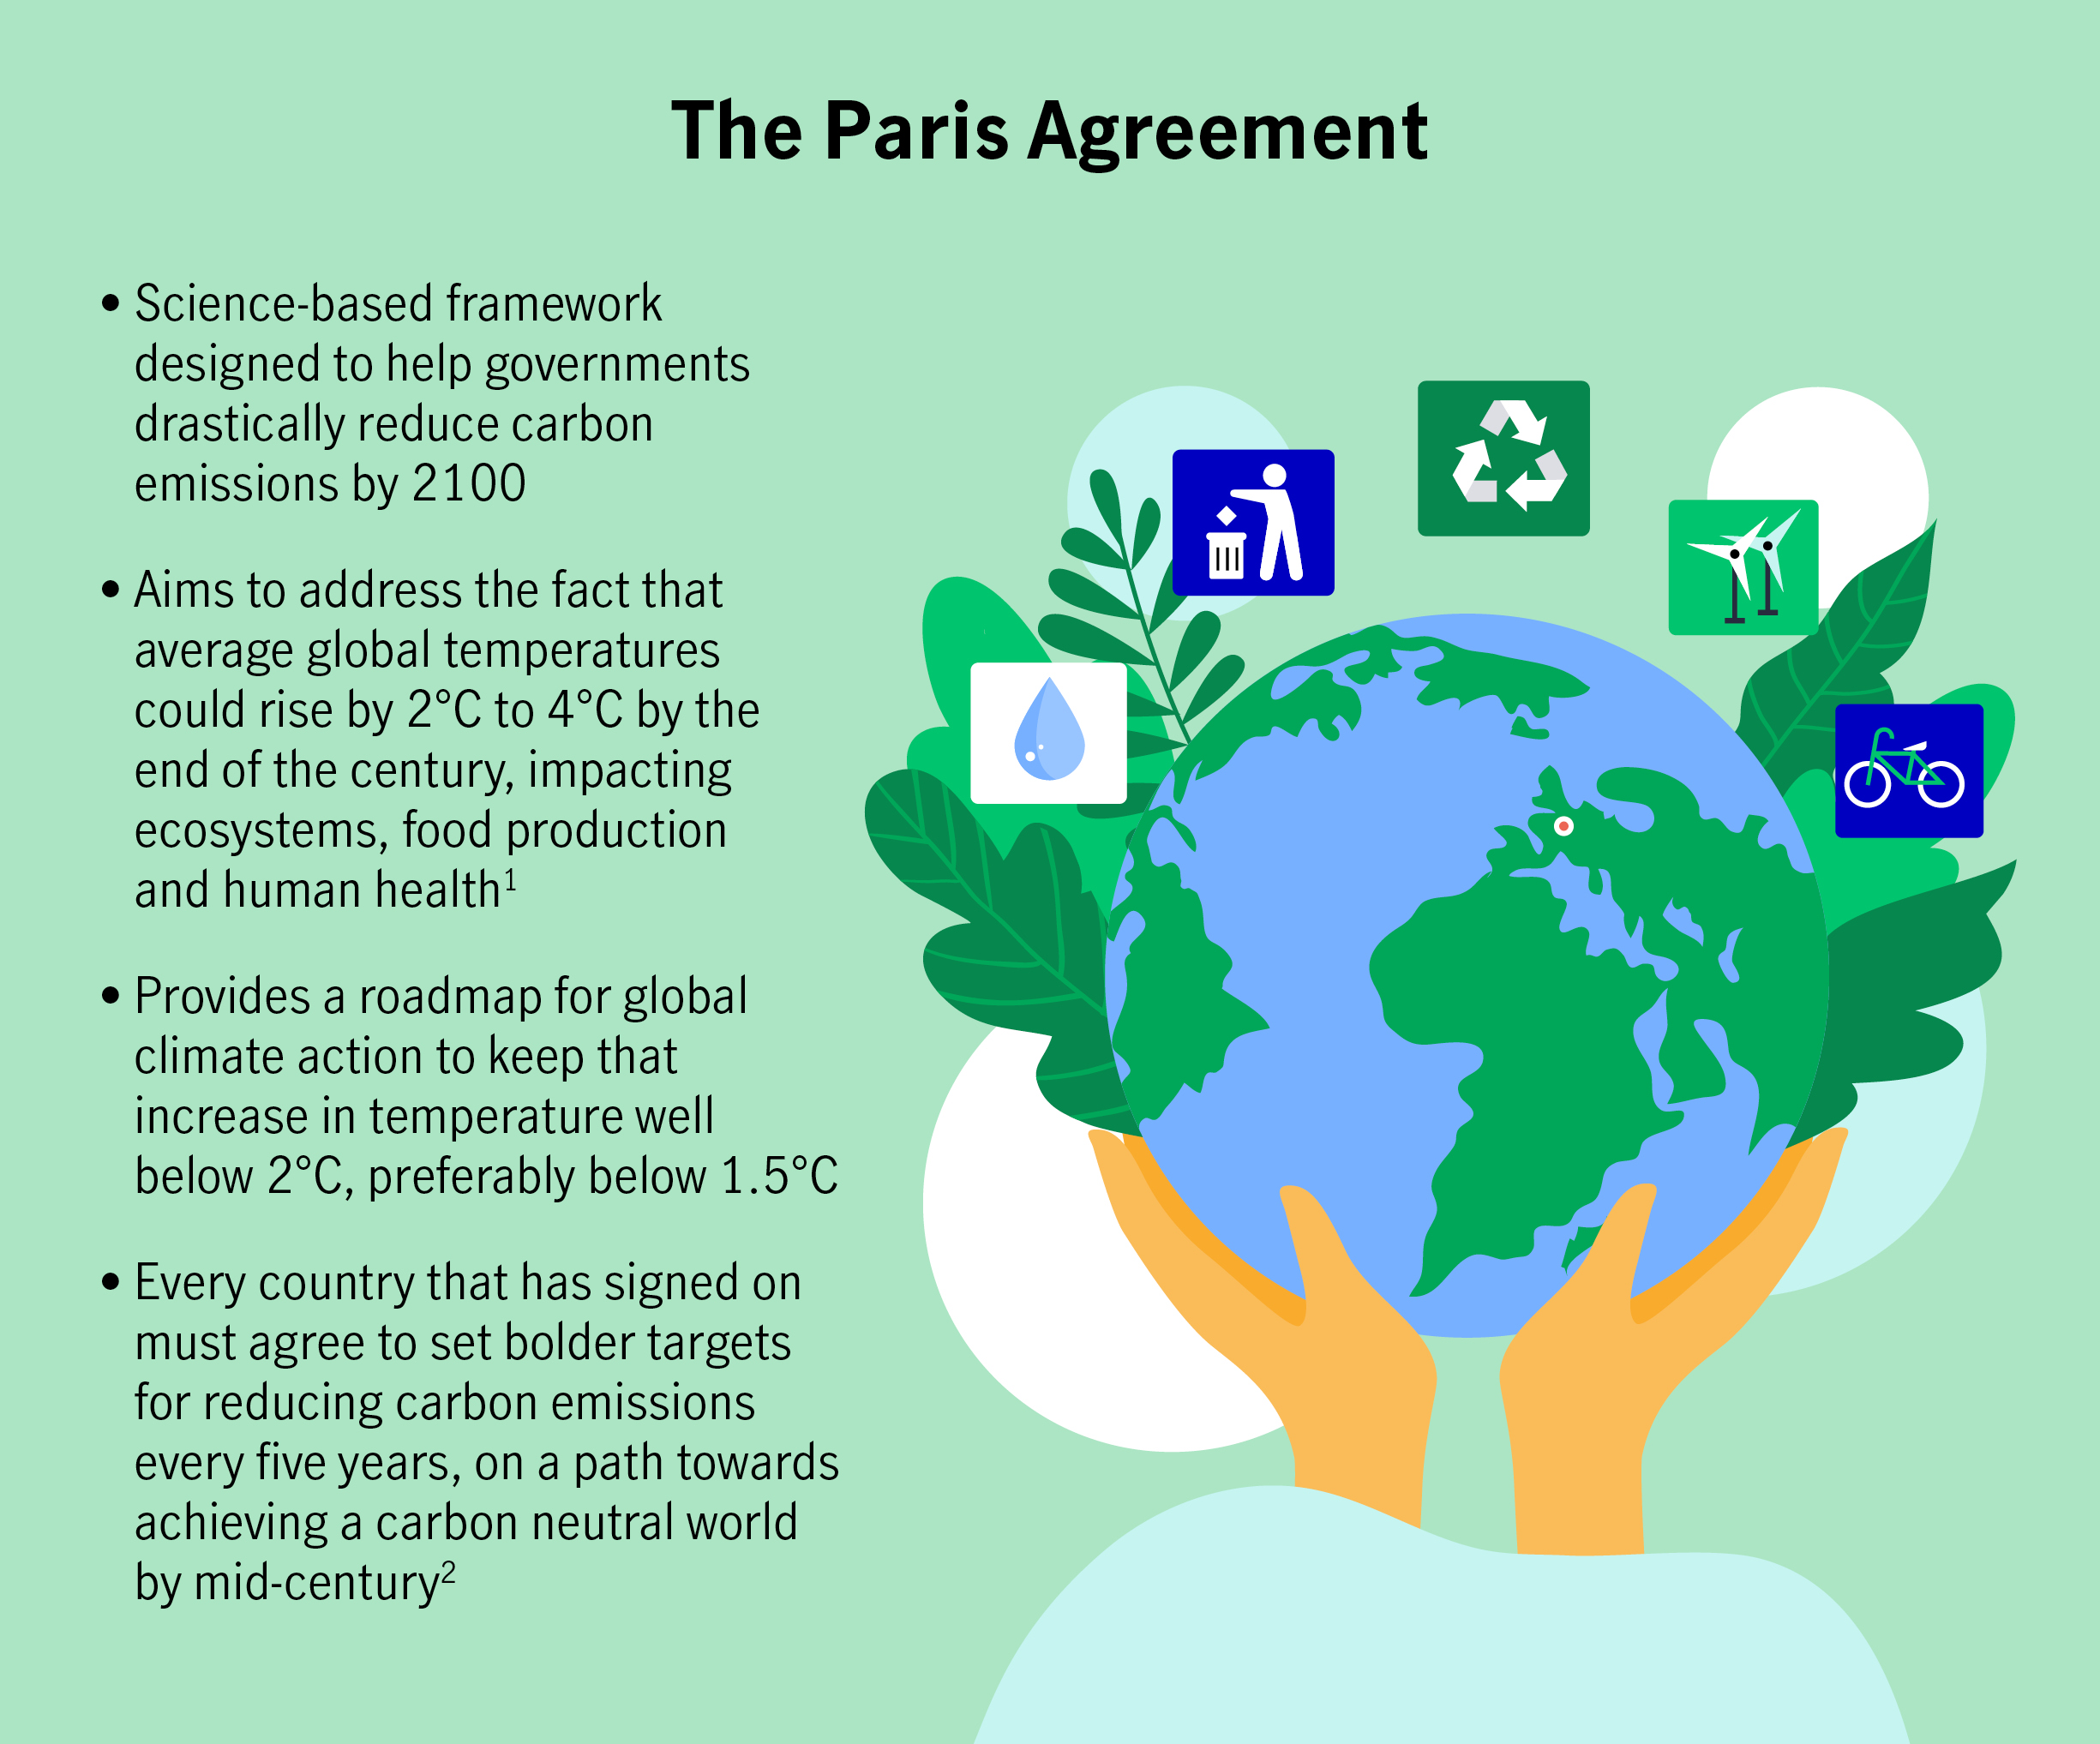 The Paris Agreement  Science-based framework designed to help governments drastically reduce carbon emissions by 2100 Aims to address the fact that average global temperatures could rise by 2°C to 4°C by the end of the century, impacting ecosystems, food production and human health.[1]  Provides a roadmap for global climate action to keep that increase in temperature well below 2°C, preferably below 1.5°C. Every country that has signed on must agree to set bolder targets for reducing carbon emissions every five years, on a path towards achieving a carbon-neutral world by mid-century.[2]